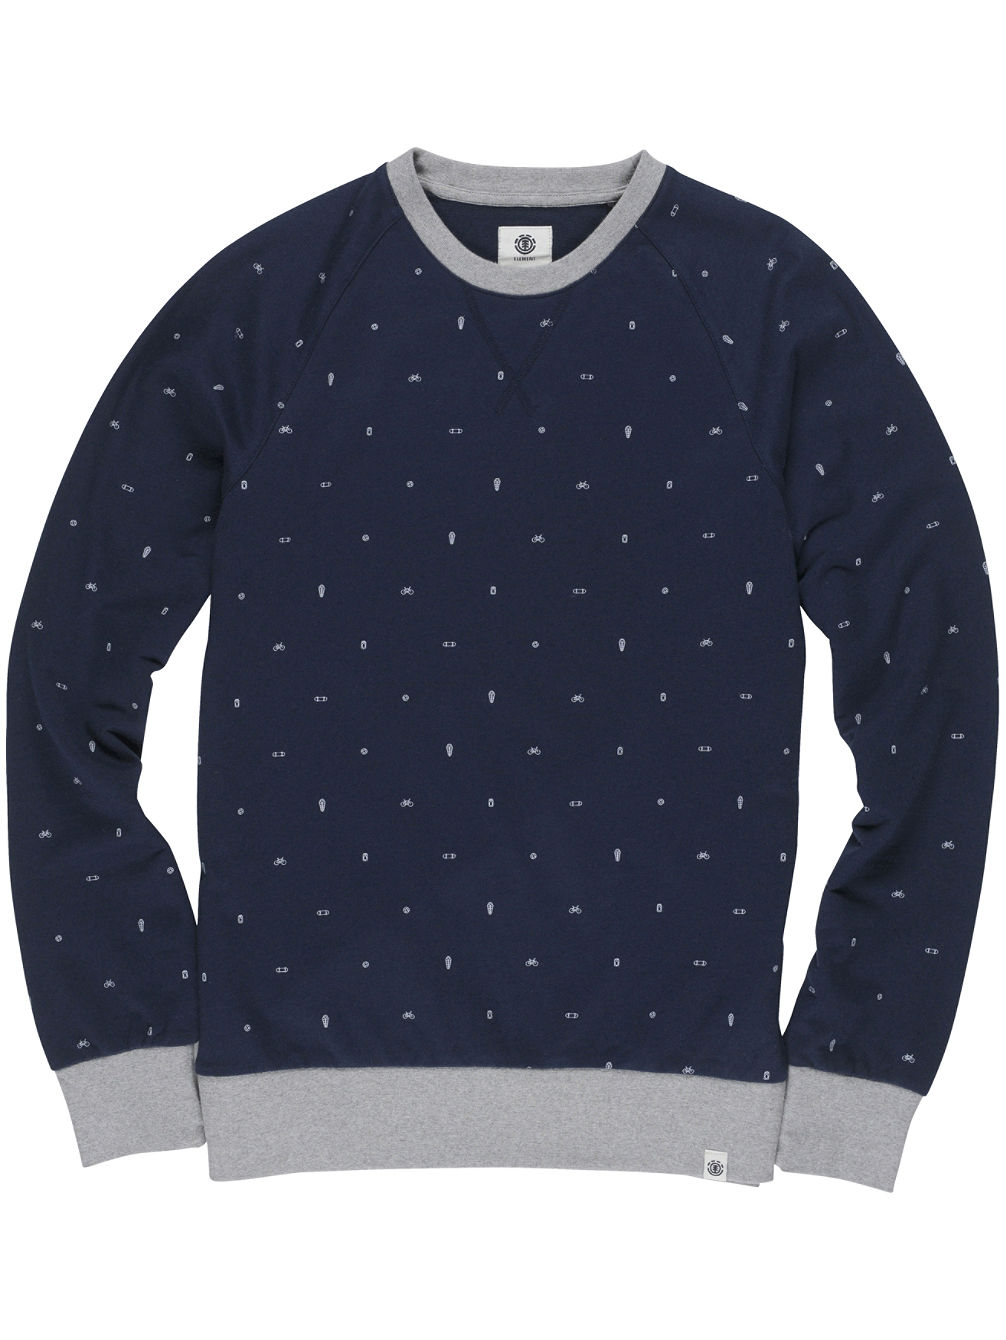 Daylight Crew Sweater